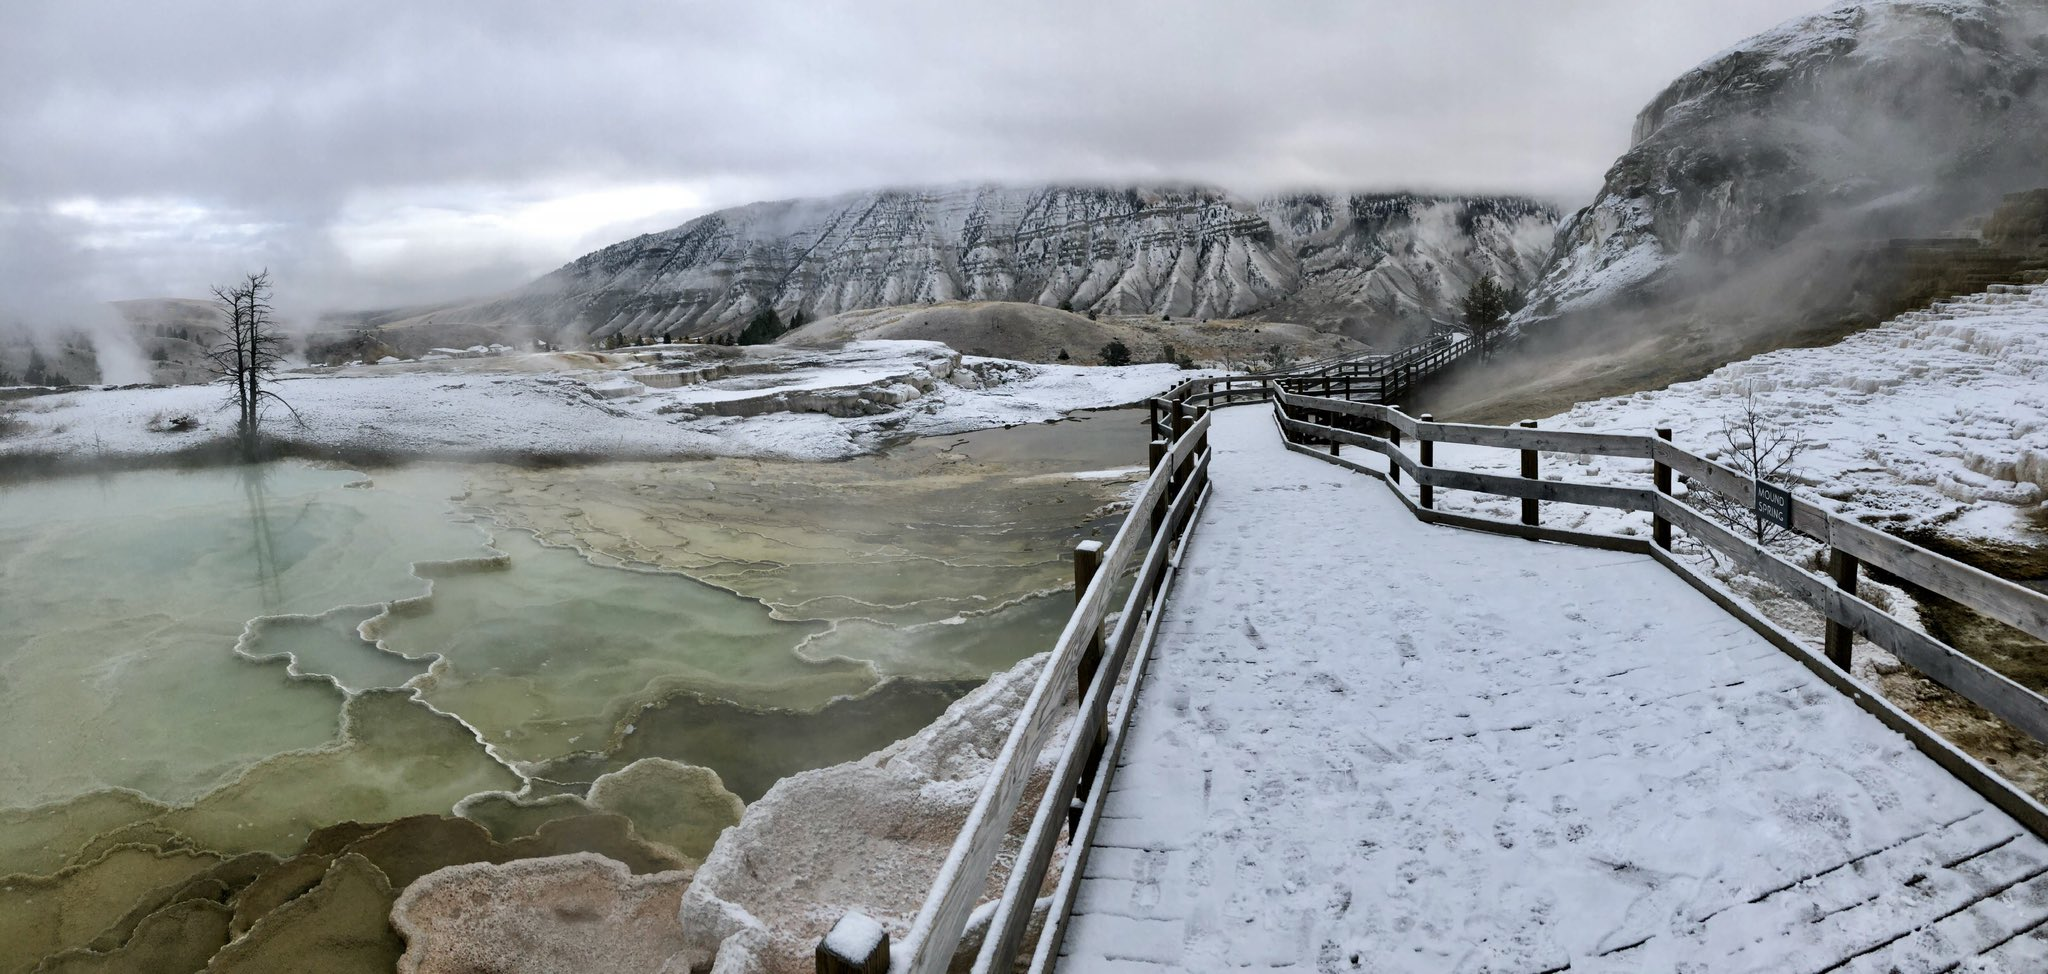 Woke up to a nice layer of snow this morning at Mammoth Hot Springs. https://t.co/NXNHvfPH7I